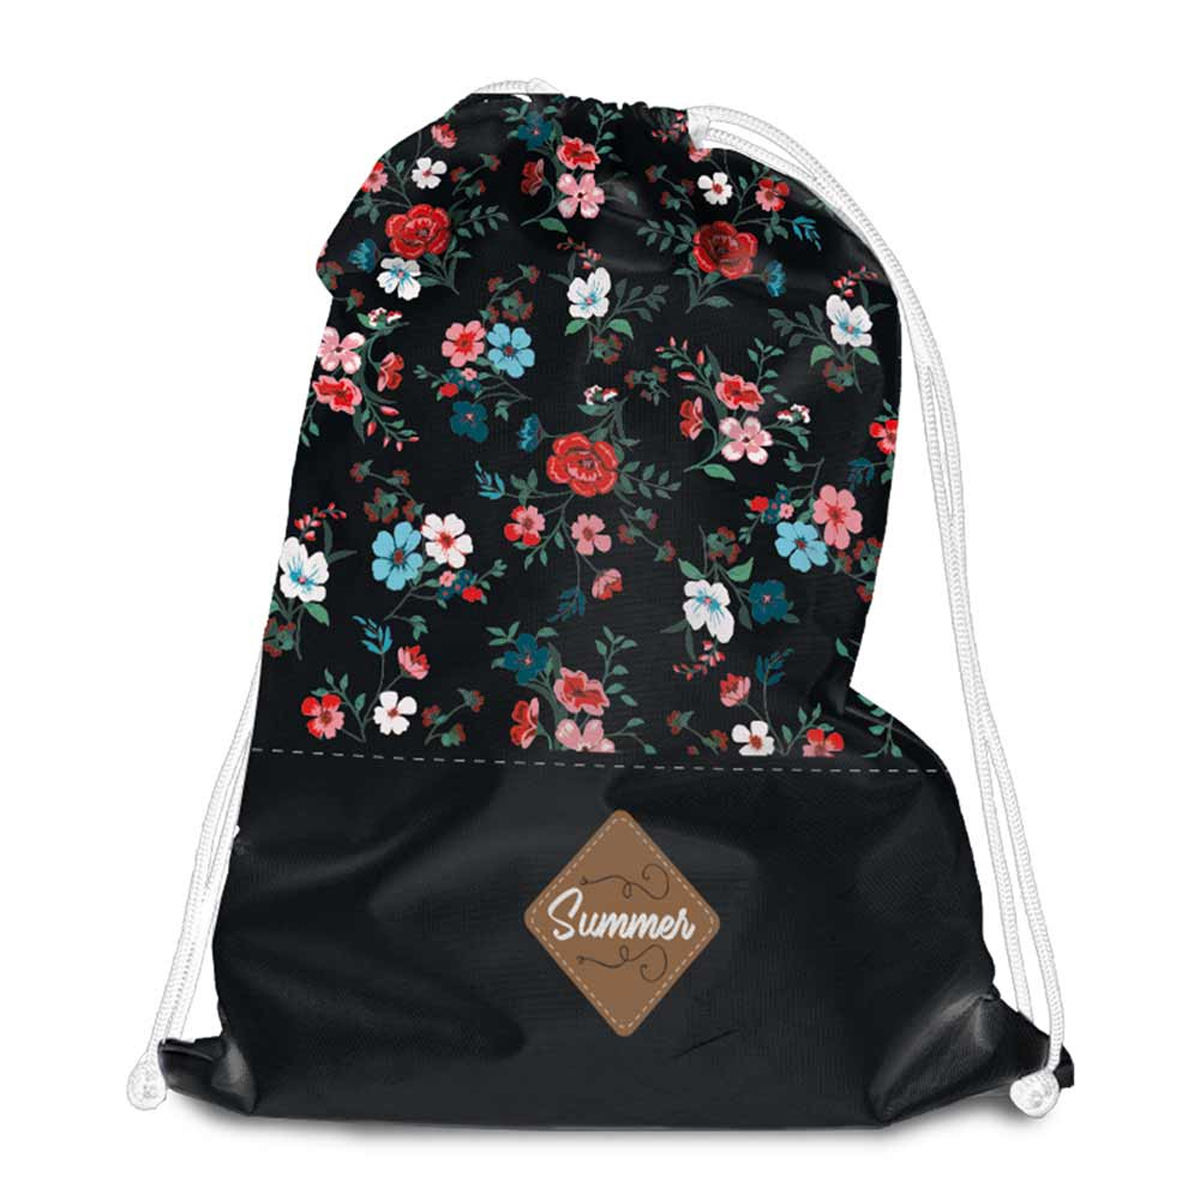 Sac de détente \'Liberty\' noir multicolore (Summer) - 38x34 cm - [Q8008]